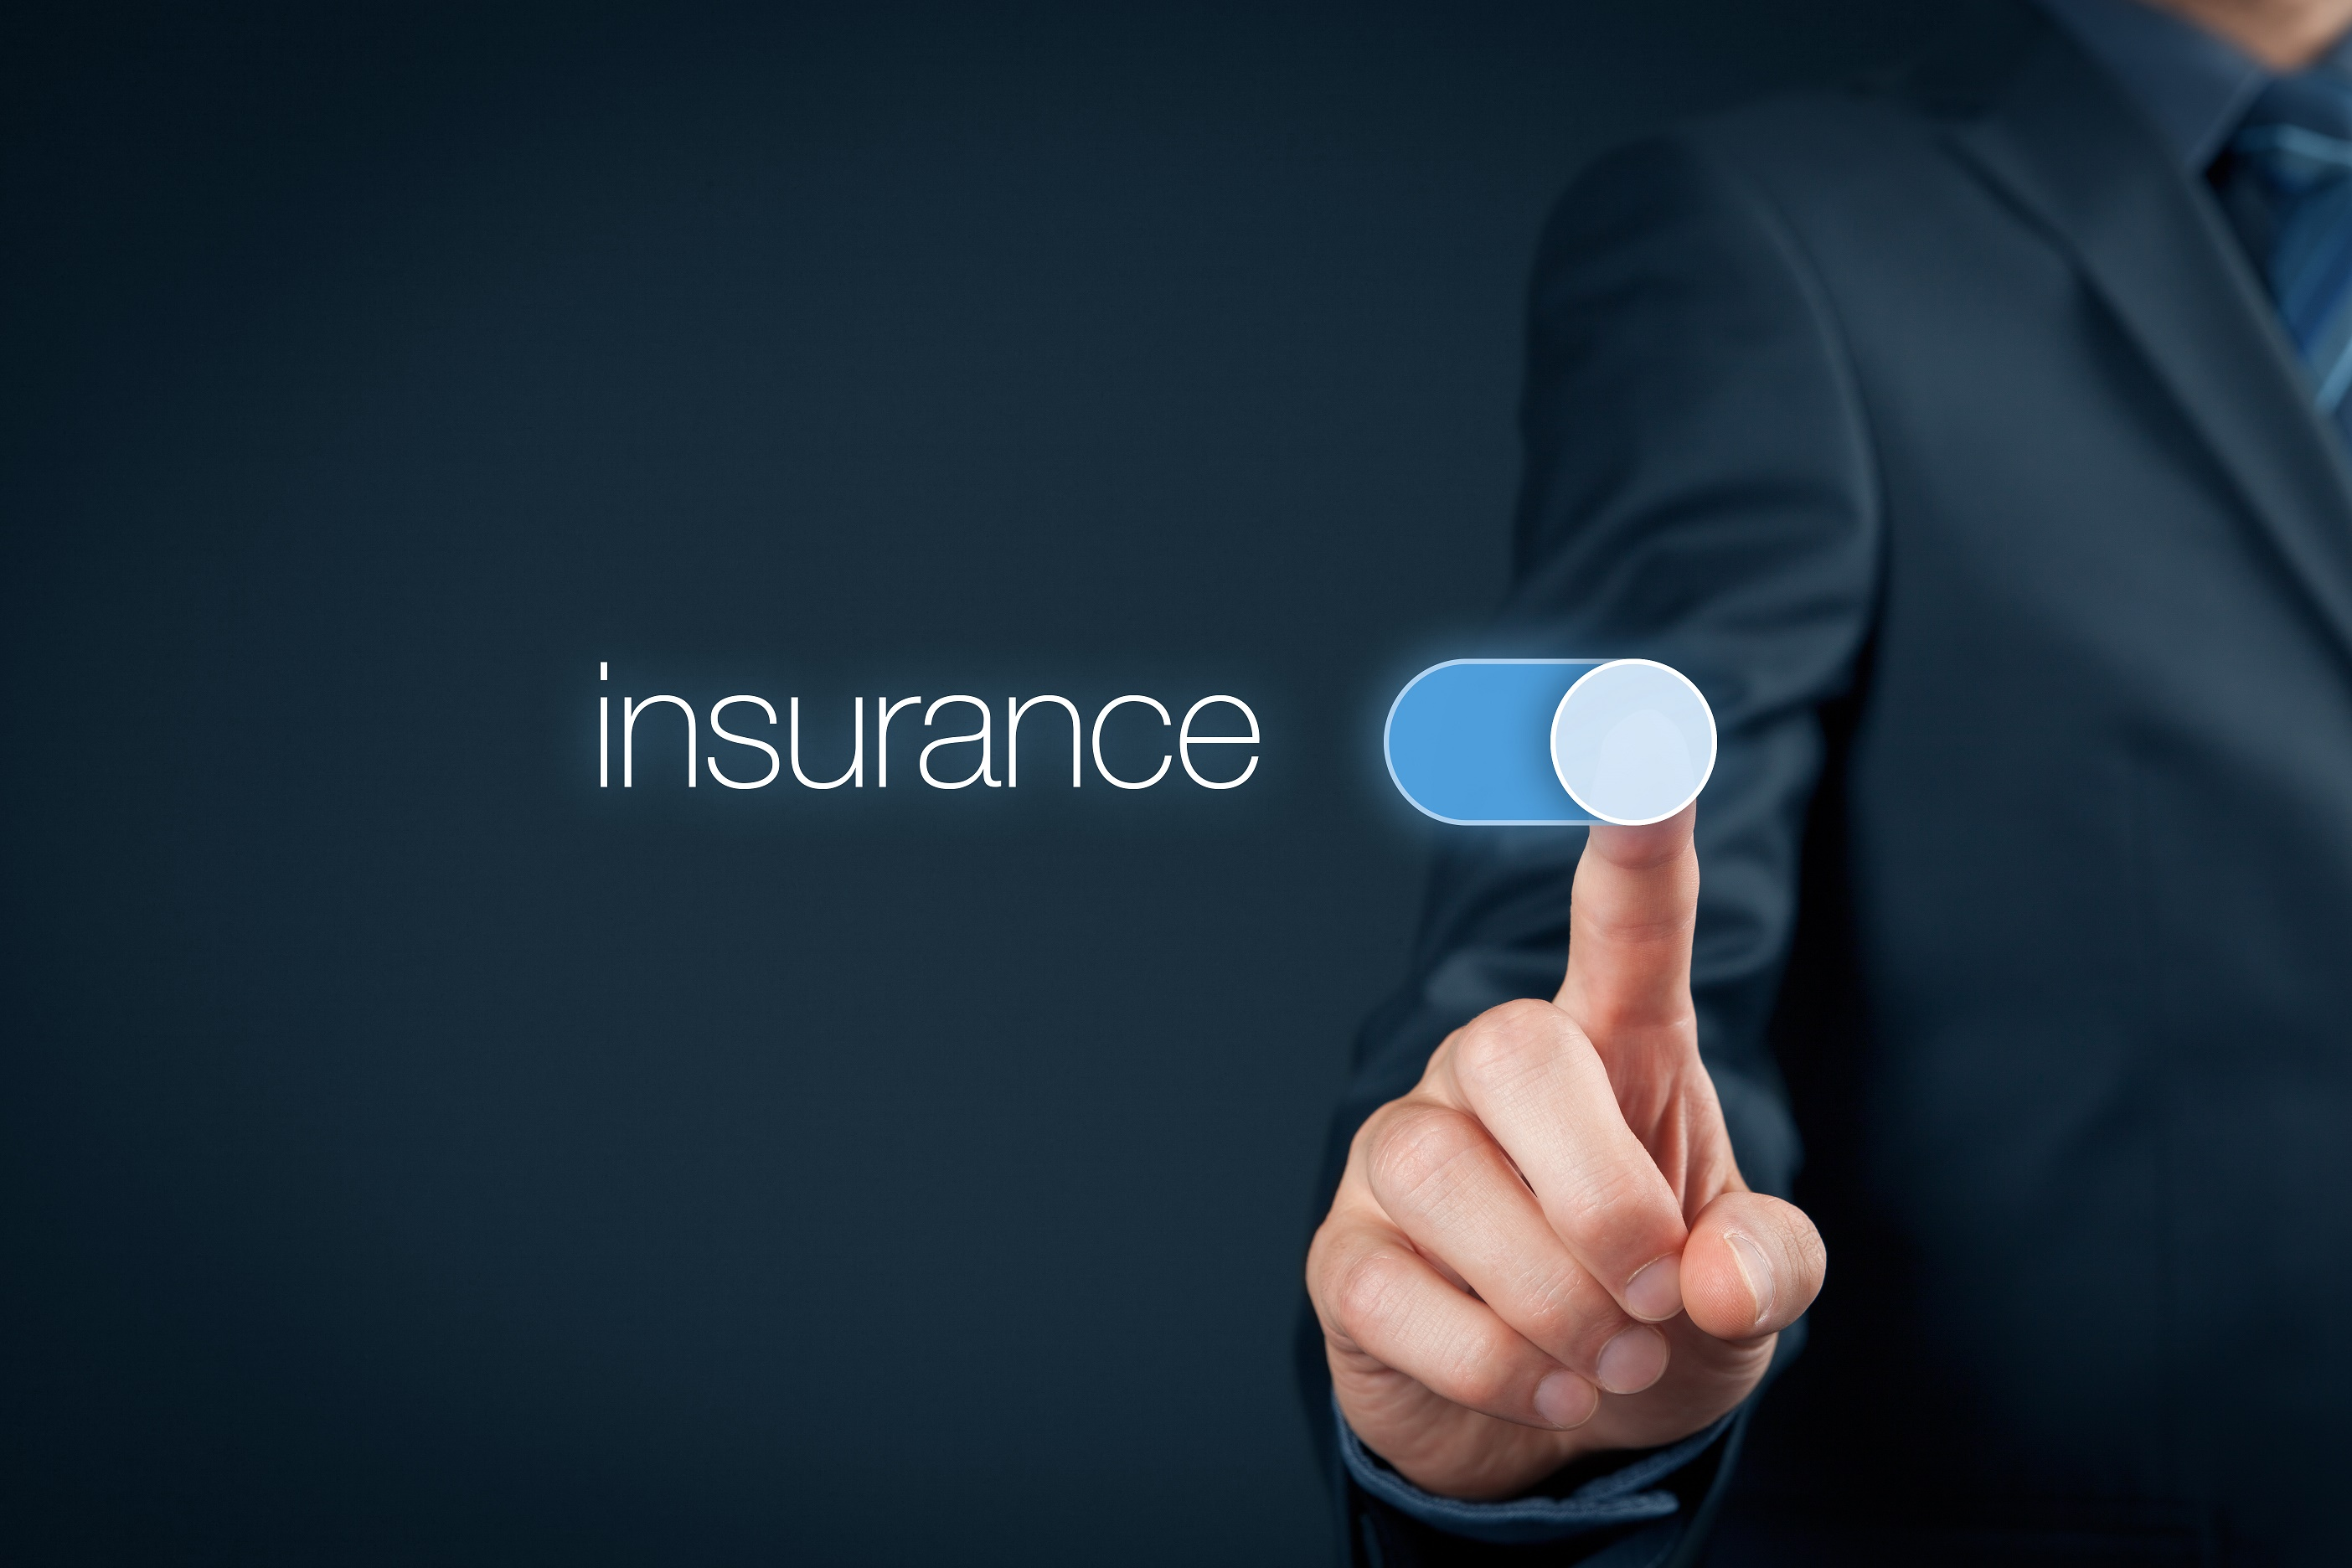 Get Safety Towards Skilled Claims By way of Surveyor Skilled Indemnity Insurance coverage